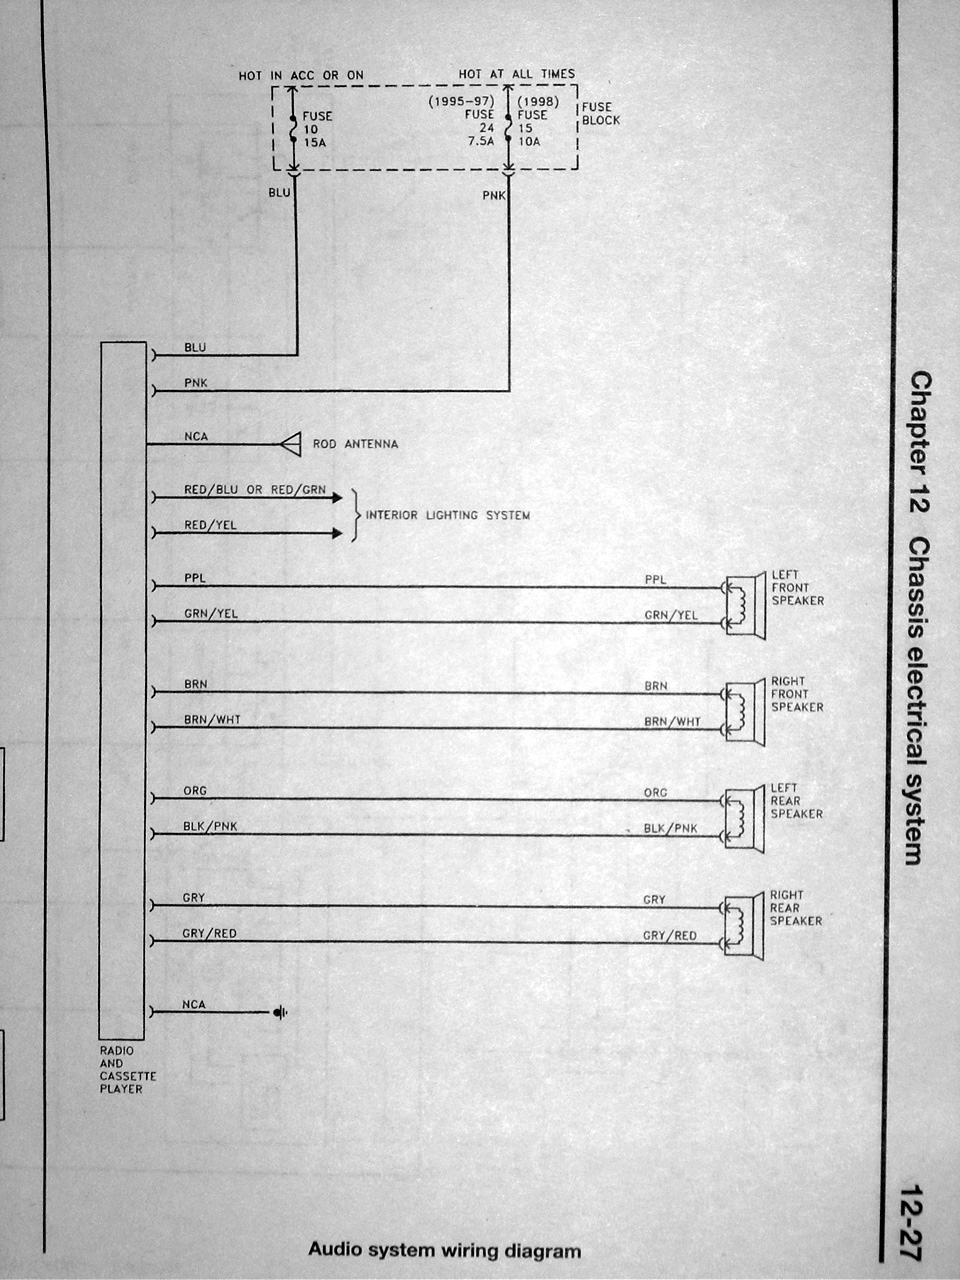 DSC01849 wiring diagram thread *useful info* nissan forum 2003 nissan 350z stereo wiring diagram at gsmx.co